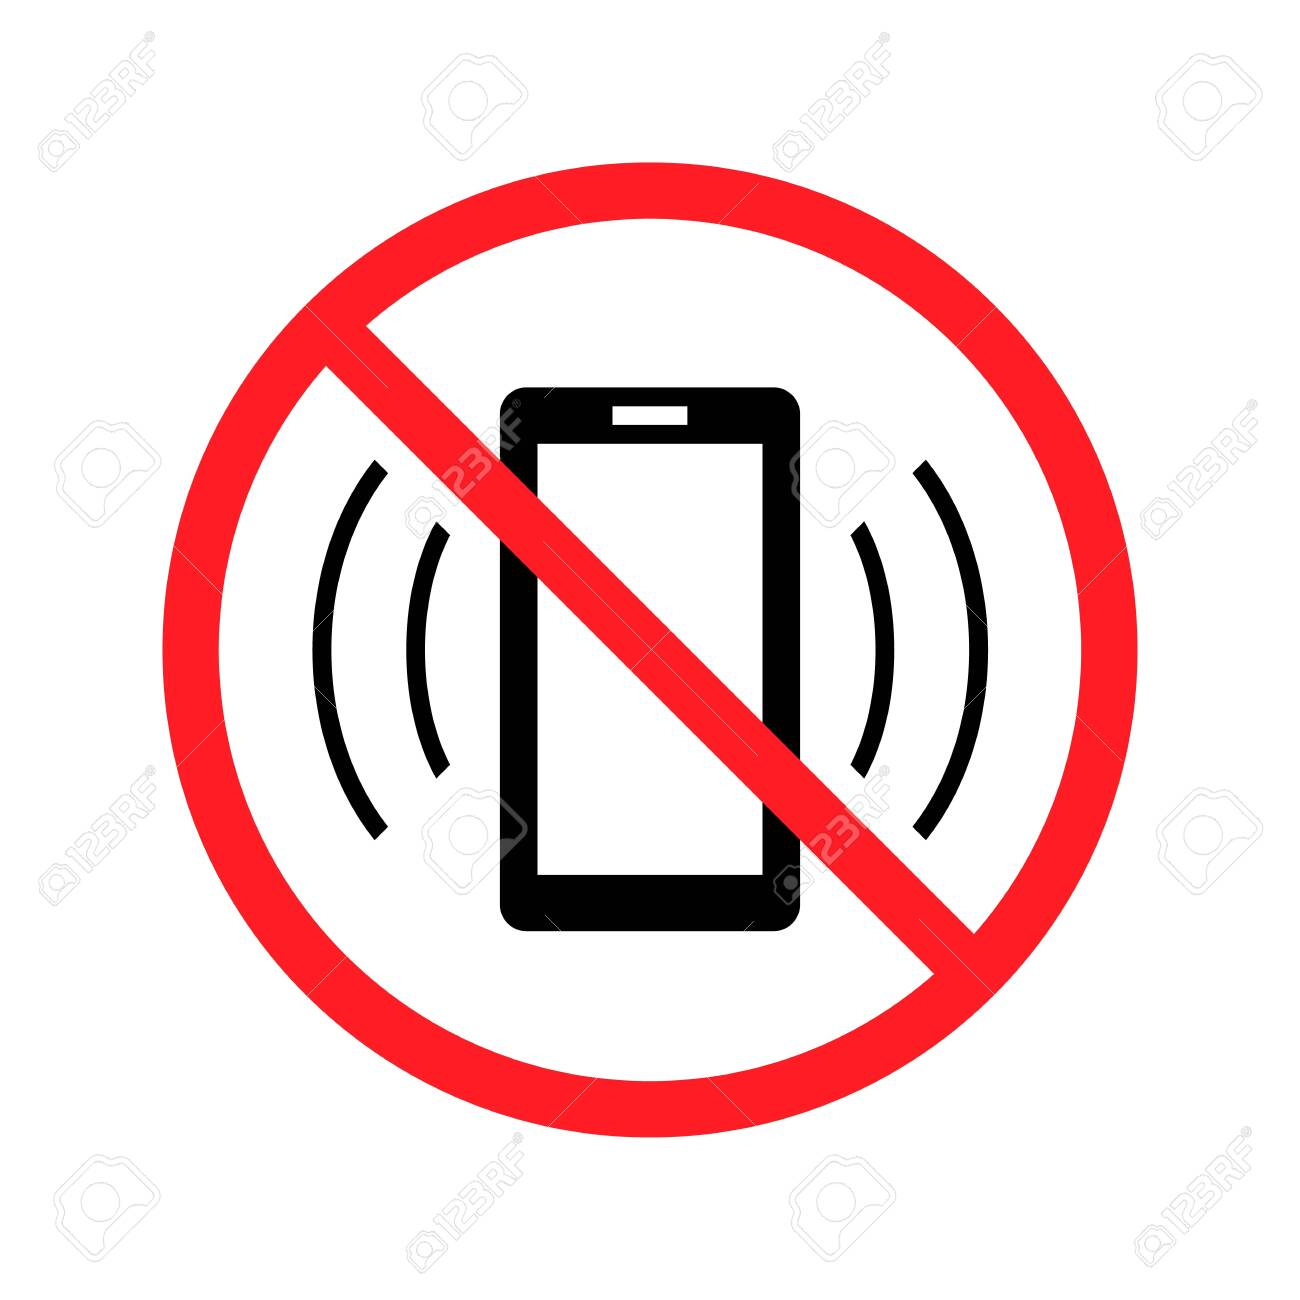 Vector no cell phone sign - 148200324